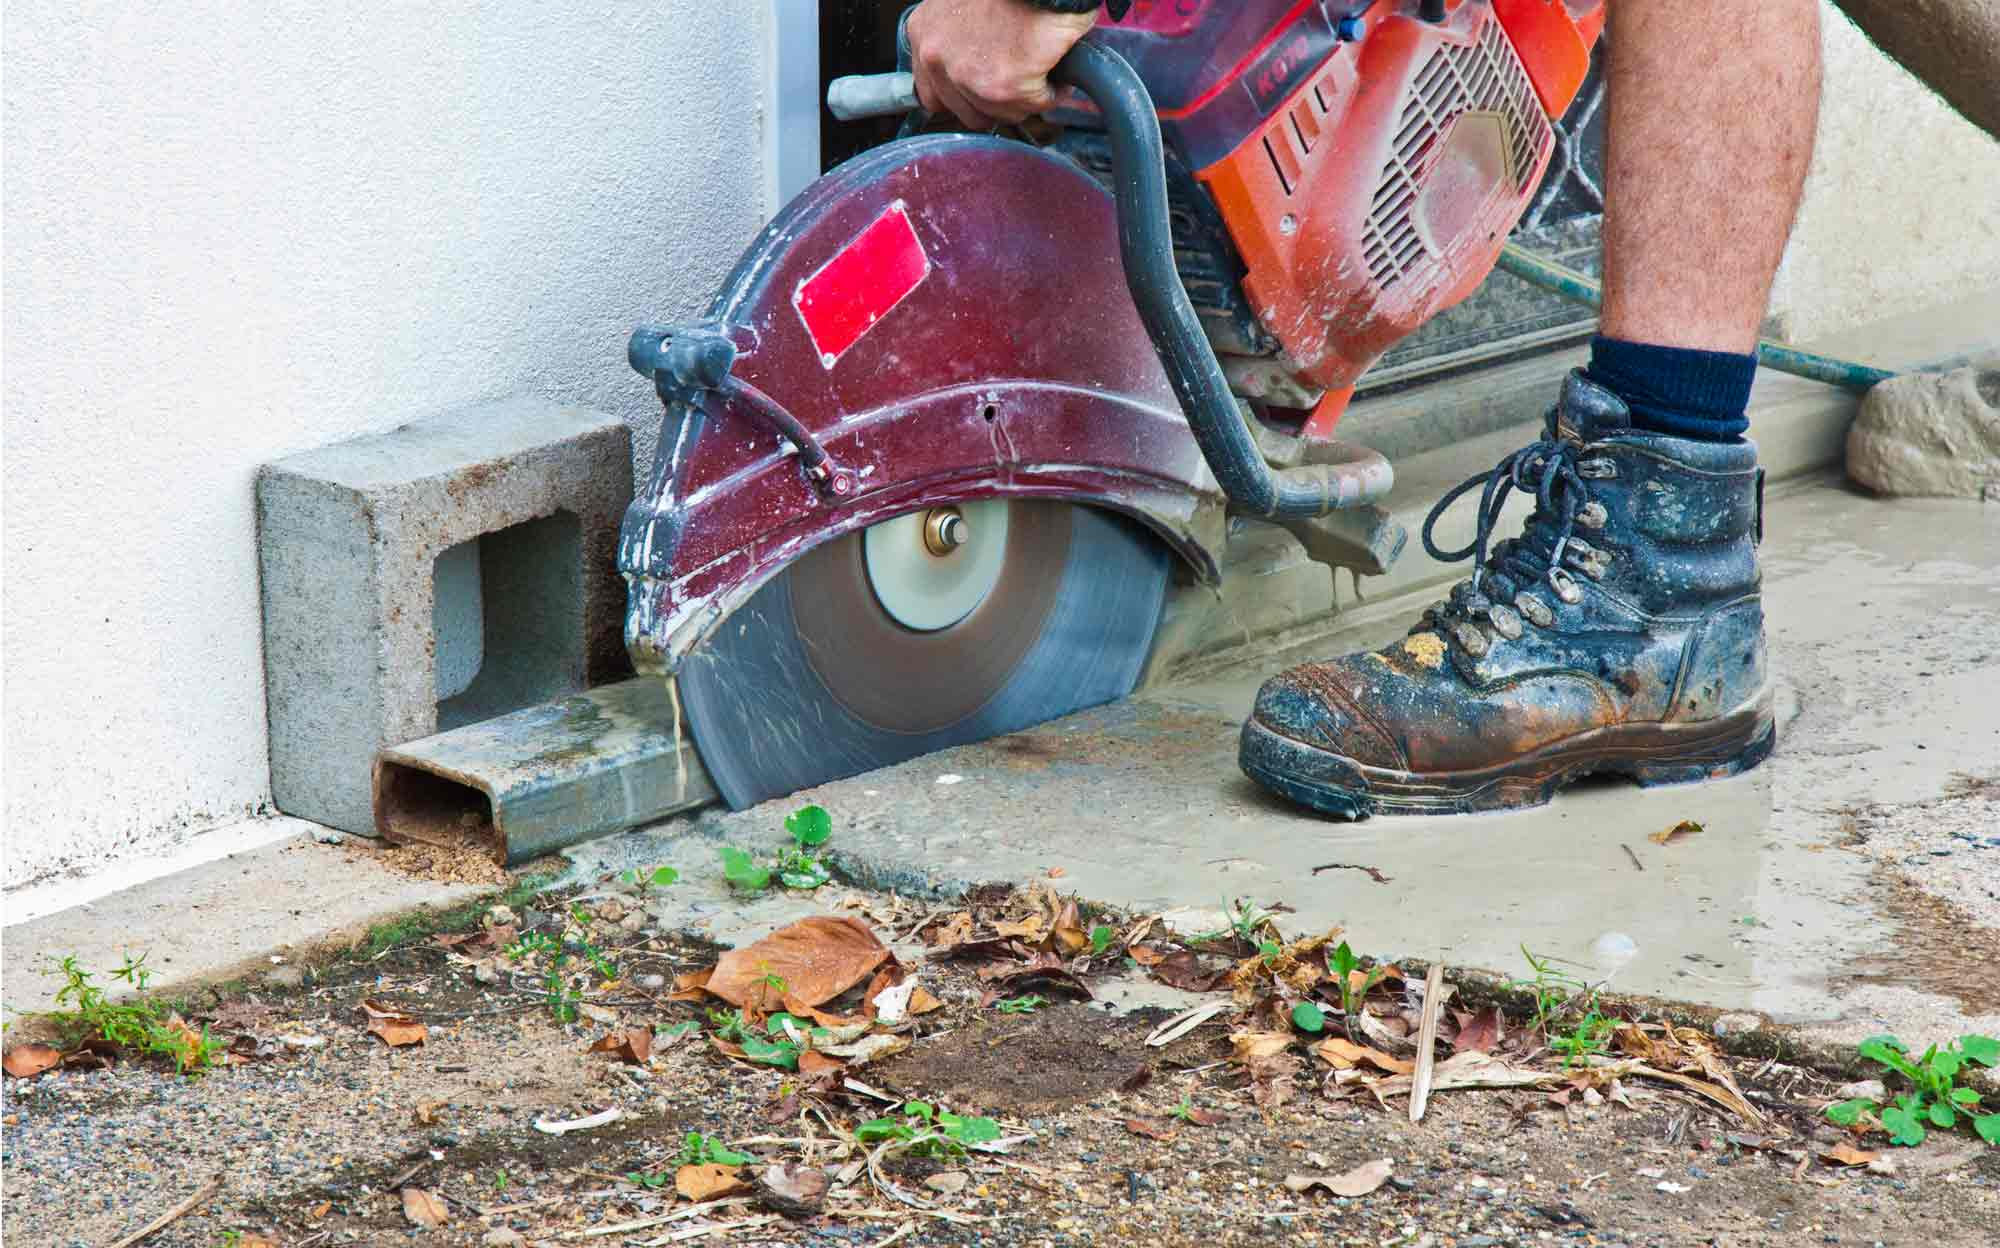 Top 5 Picks For The Best Work Boots For Concrete Floors